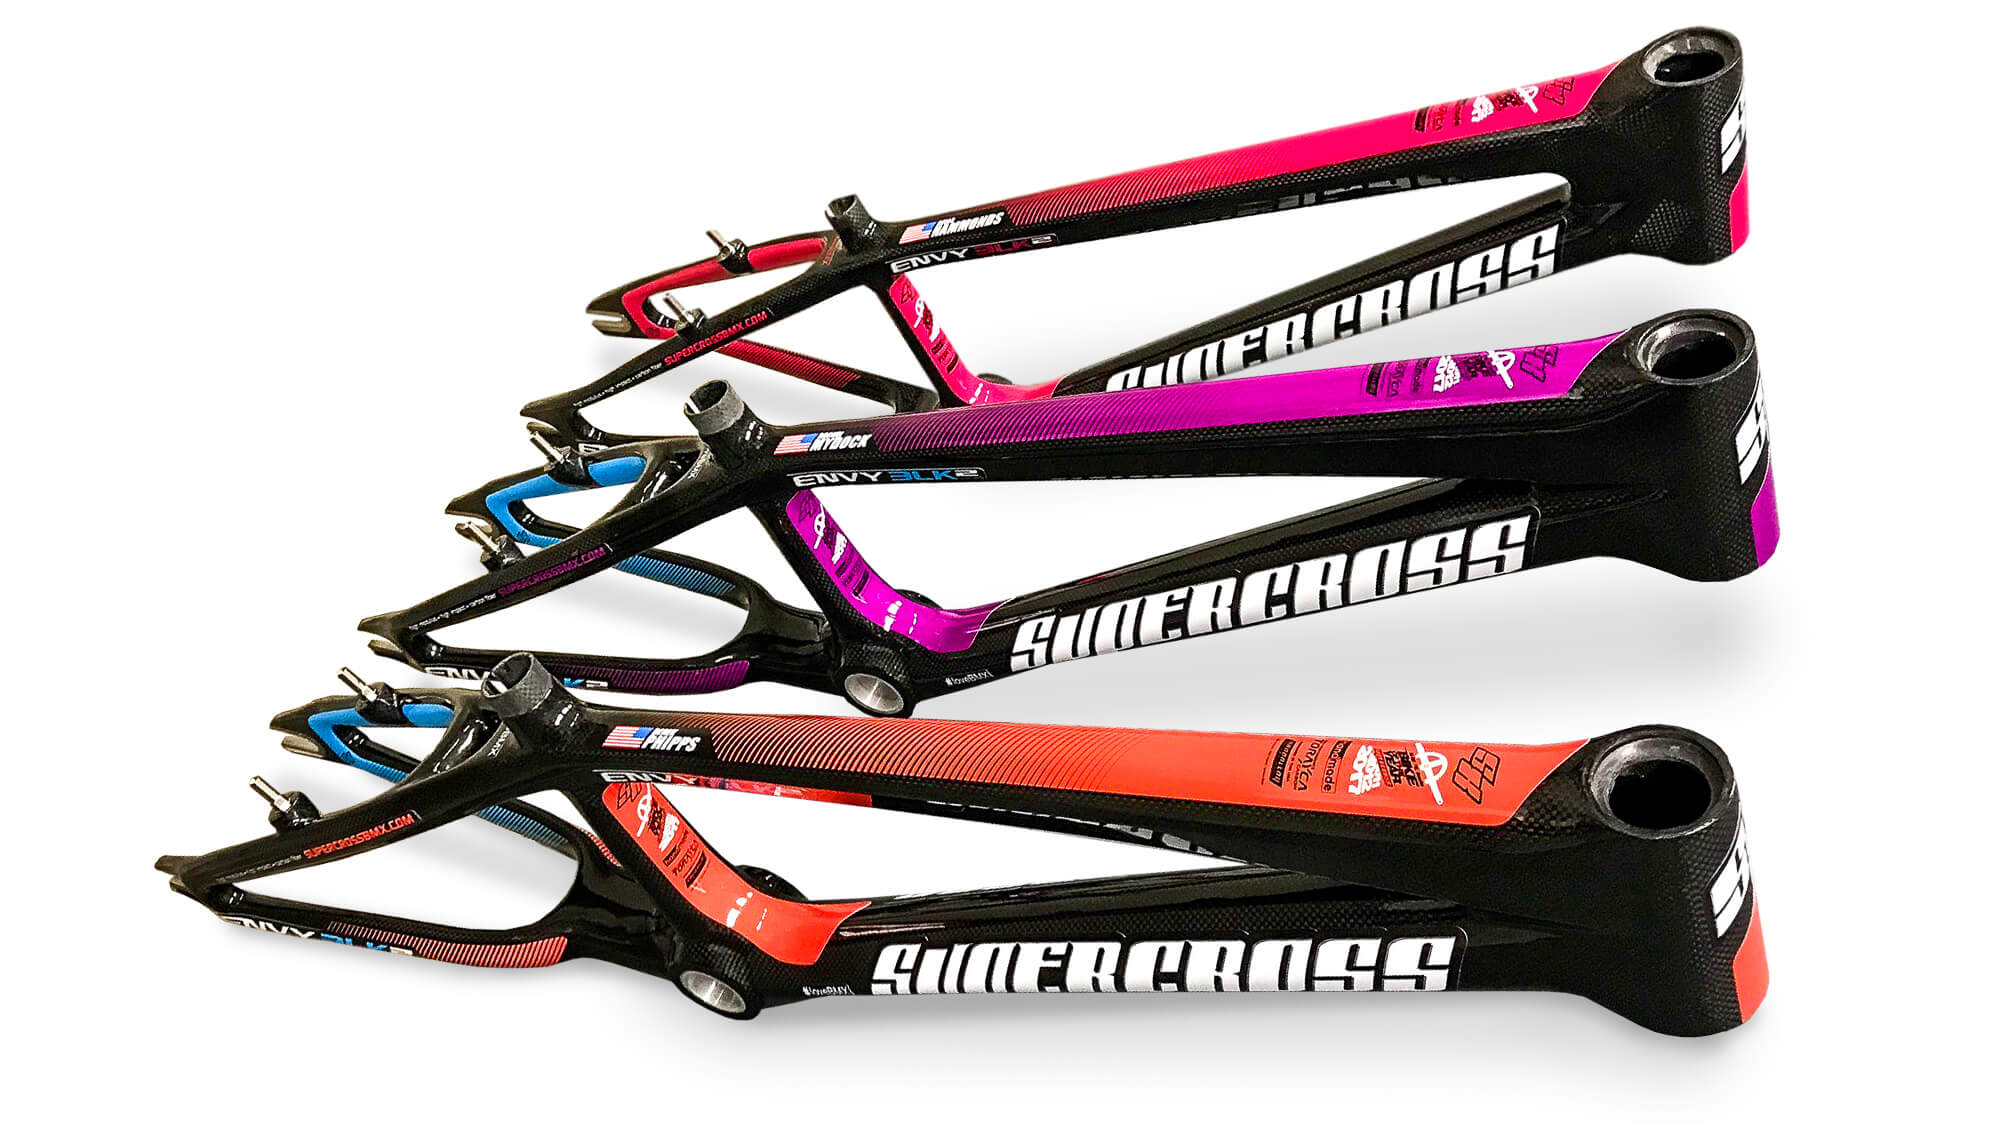 Supercross Envy BLK 2 - Supercross BMX